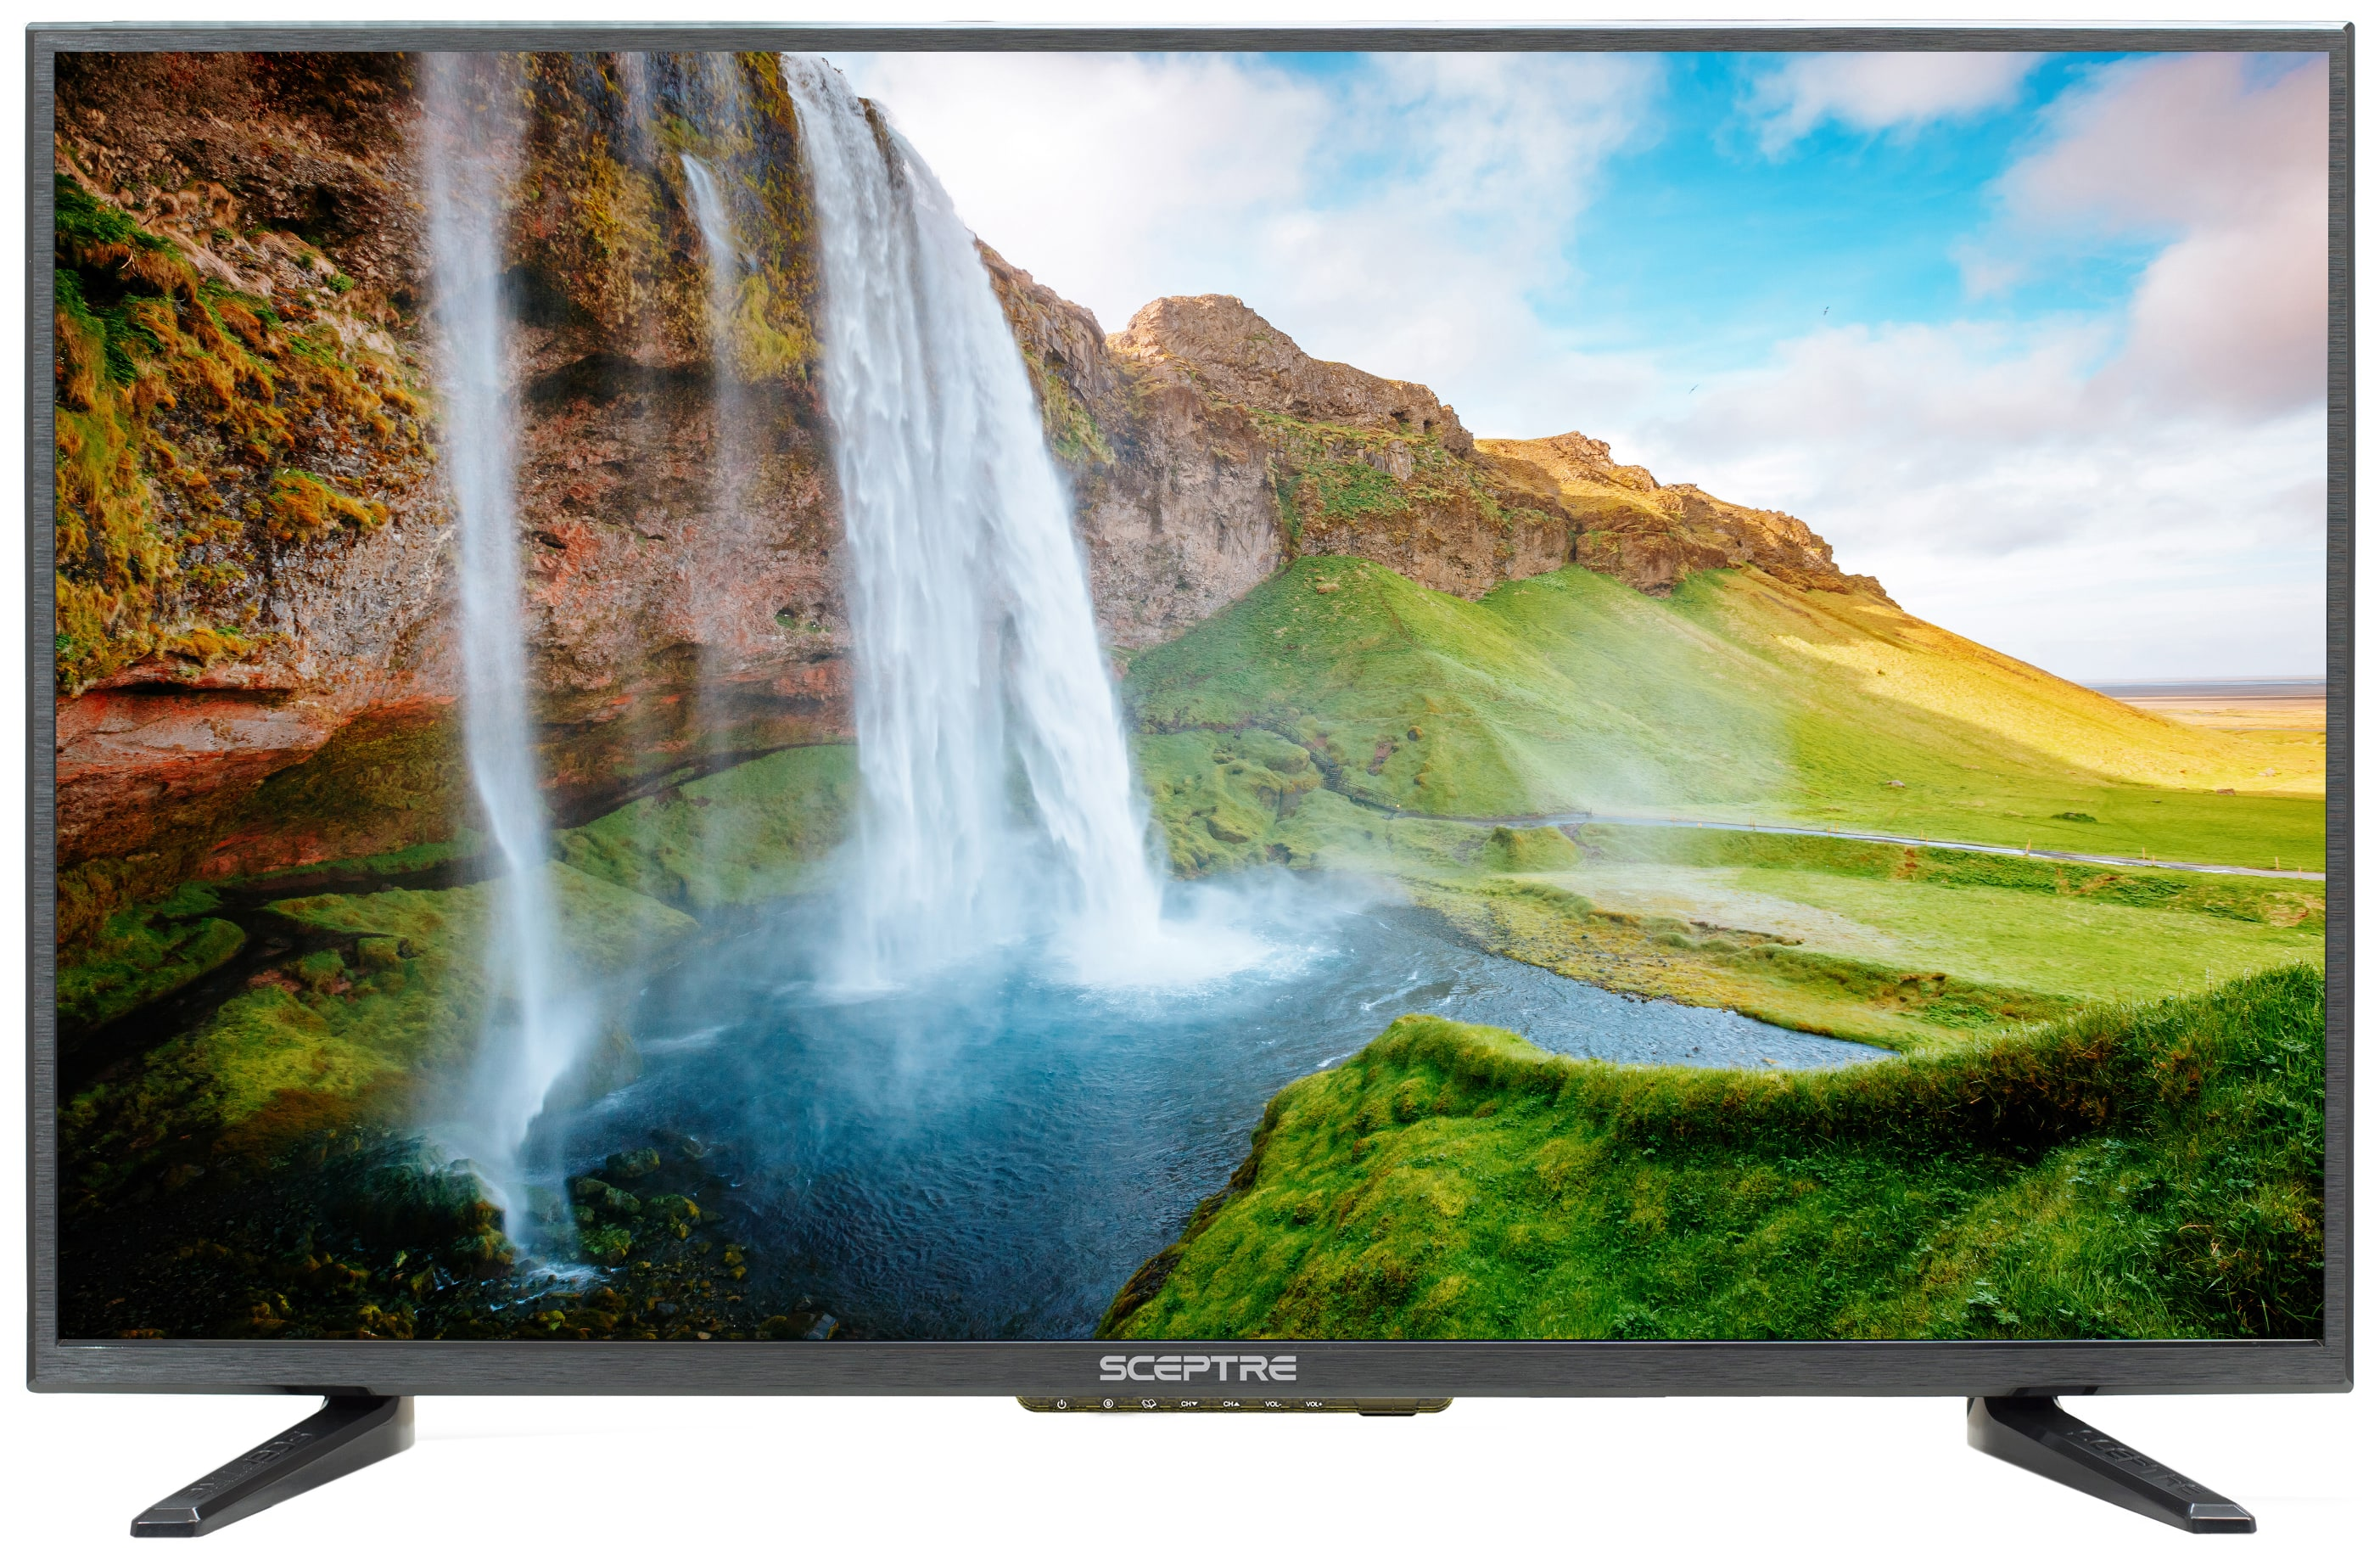 Sceptre 32? HD TV $89.99 + Free Shipping